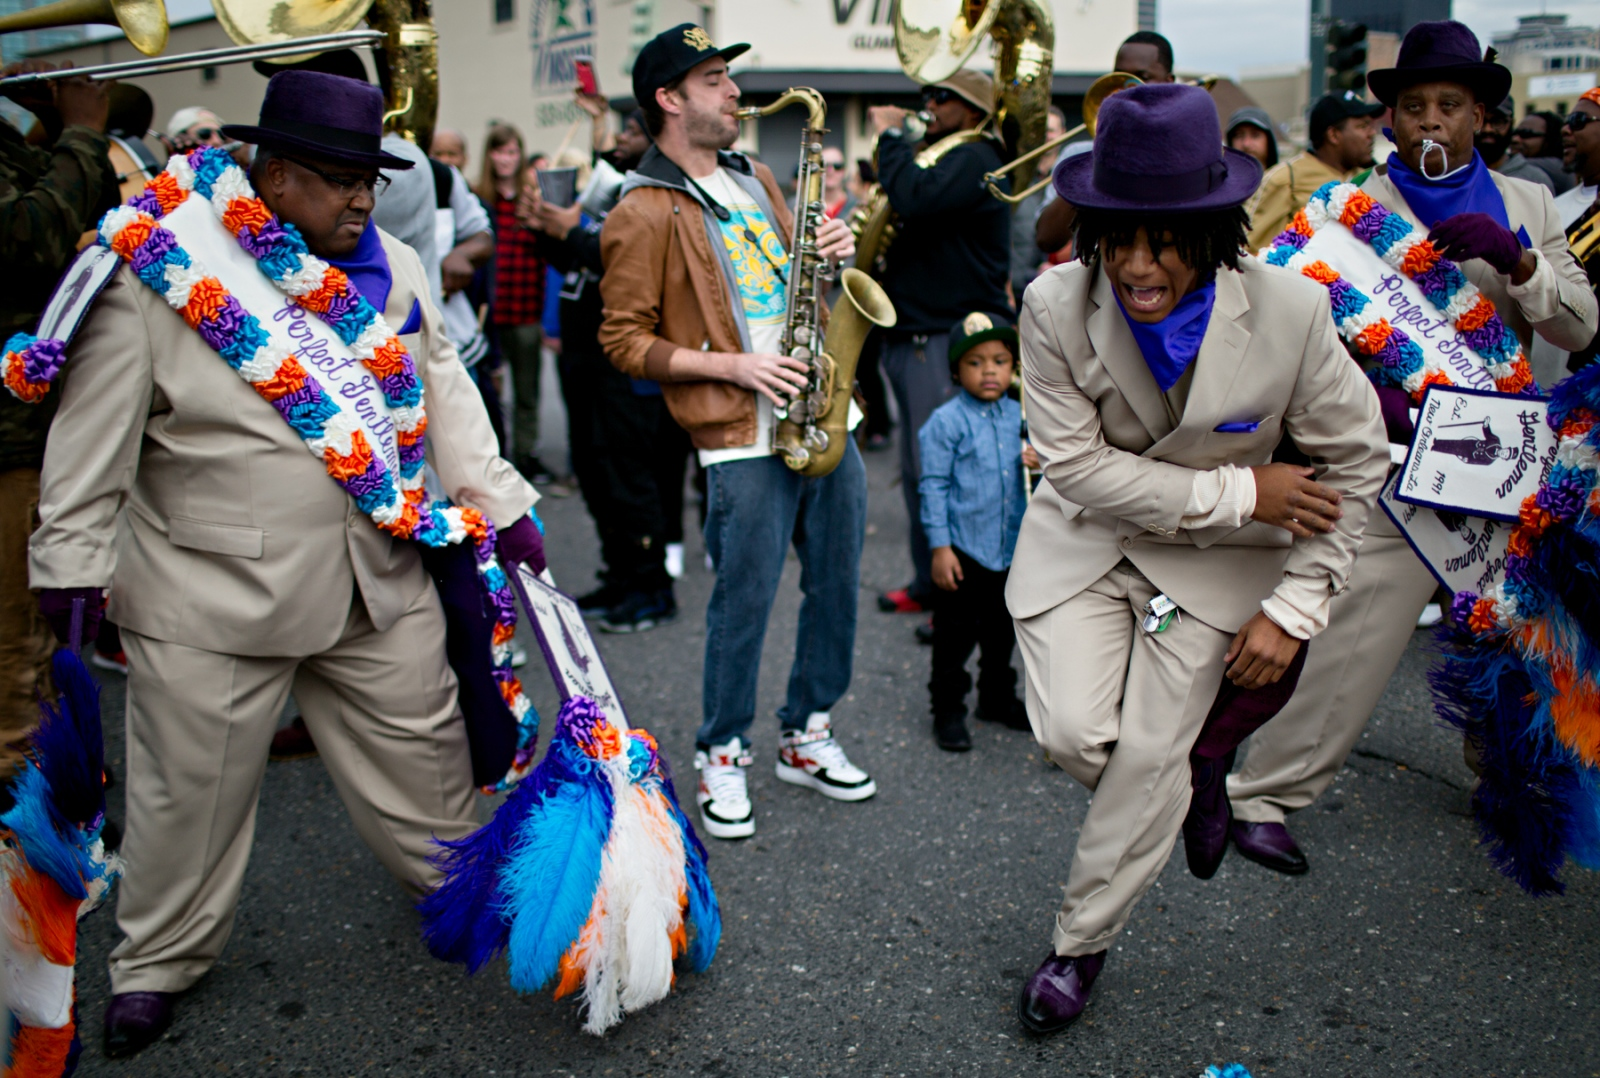 The President of the Perfect Gentleman's Social and Pleasure Club, Travis Lyons (left), looks on while his son, the rapper T. Lyons shows off his moves during the Second Line Parade. Travis Lyons has been participating and sponsoring Second Line parades for decades and essentially finances the cost of the sponsorship of his parades out of his own pocket. The cost of putting on a parade which includes all permits, police permits, costumes and all other incidental costs can go as high as $12,000 per parade.